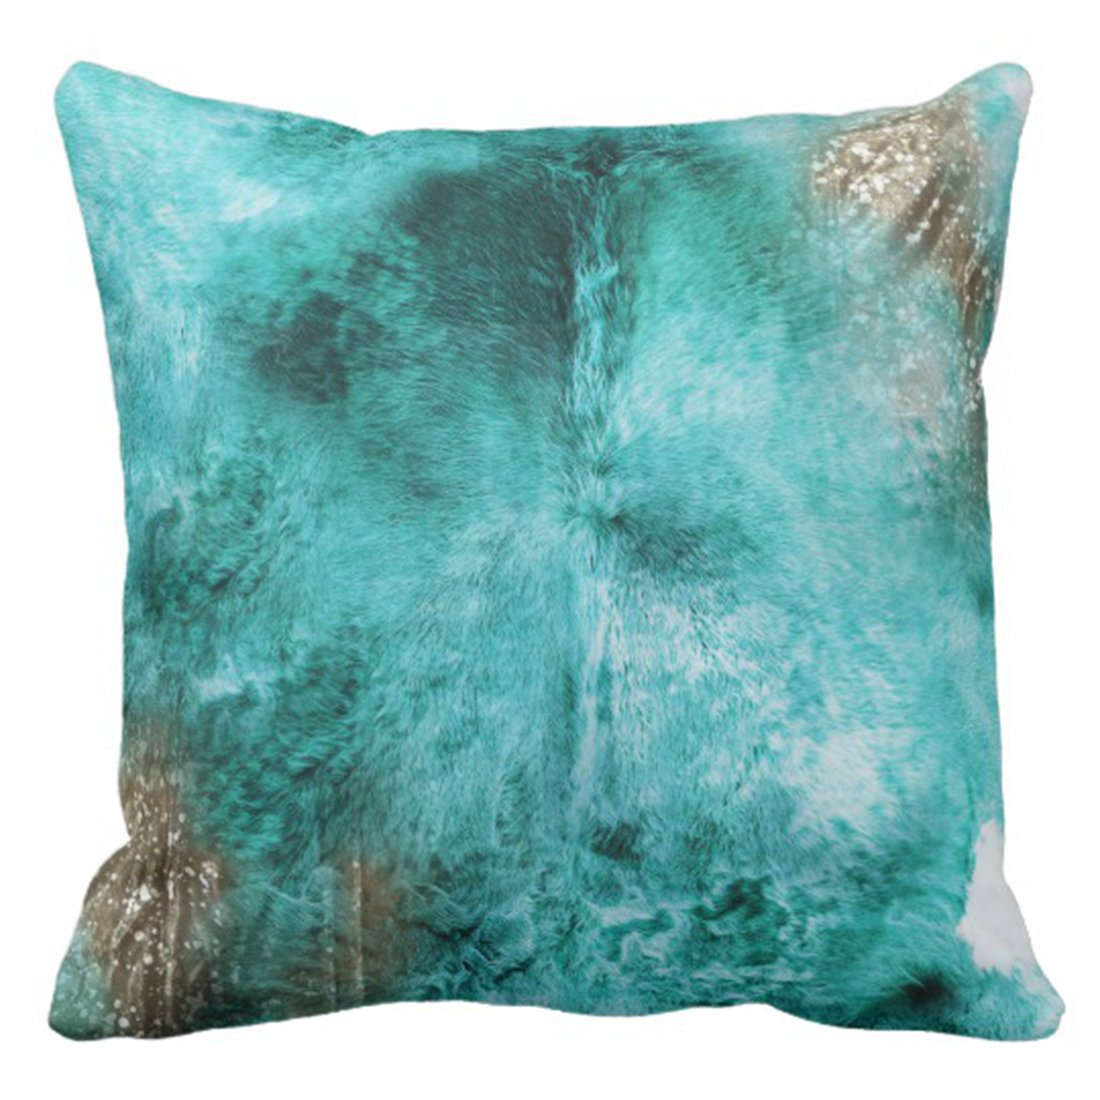 Throw Pillow Cover Turquoise Brown and White Exotic Cowhide Print ative Pillow Case Tribal Home  Square 18x18 Pakistan